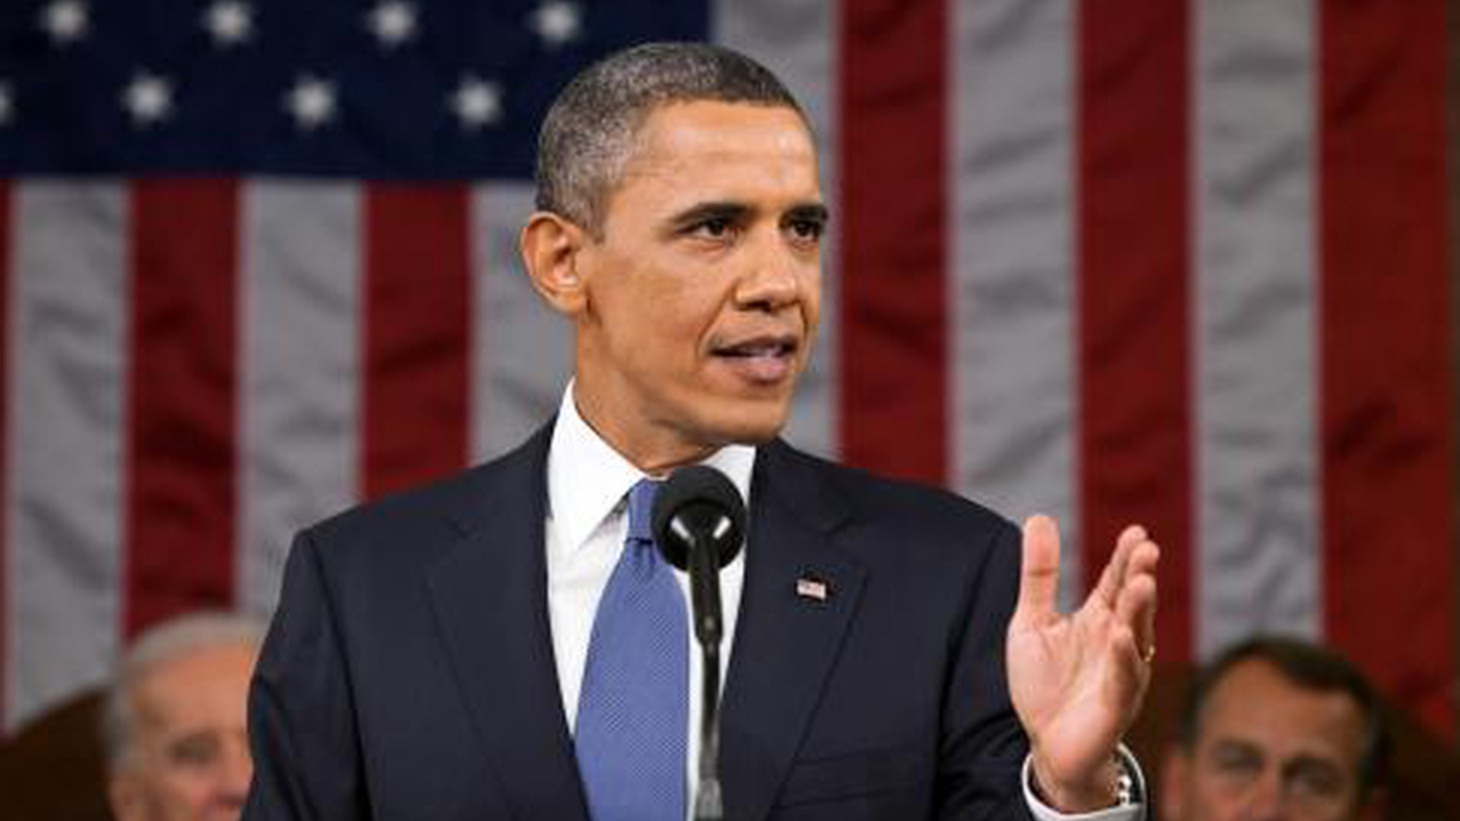 President Barack Obama will deliver his State of the Union address on Tuesday, January 25, at 6pm (WST). National Public Radio's Michele Norris will host our coverage that will include President Obama's address as well as the Republican responses.